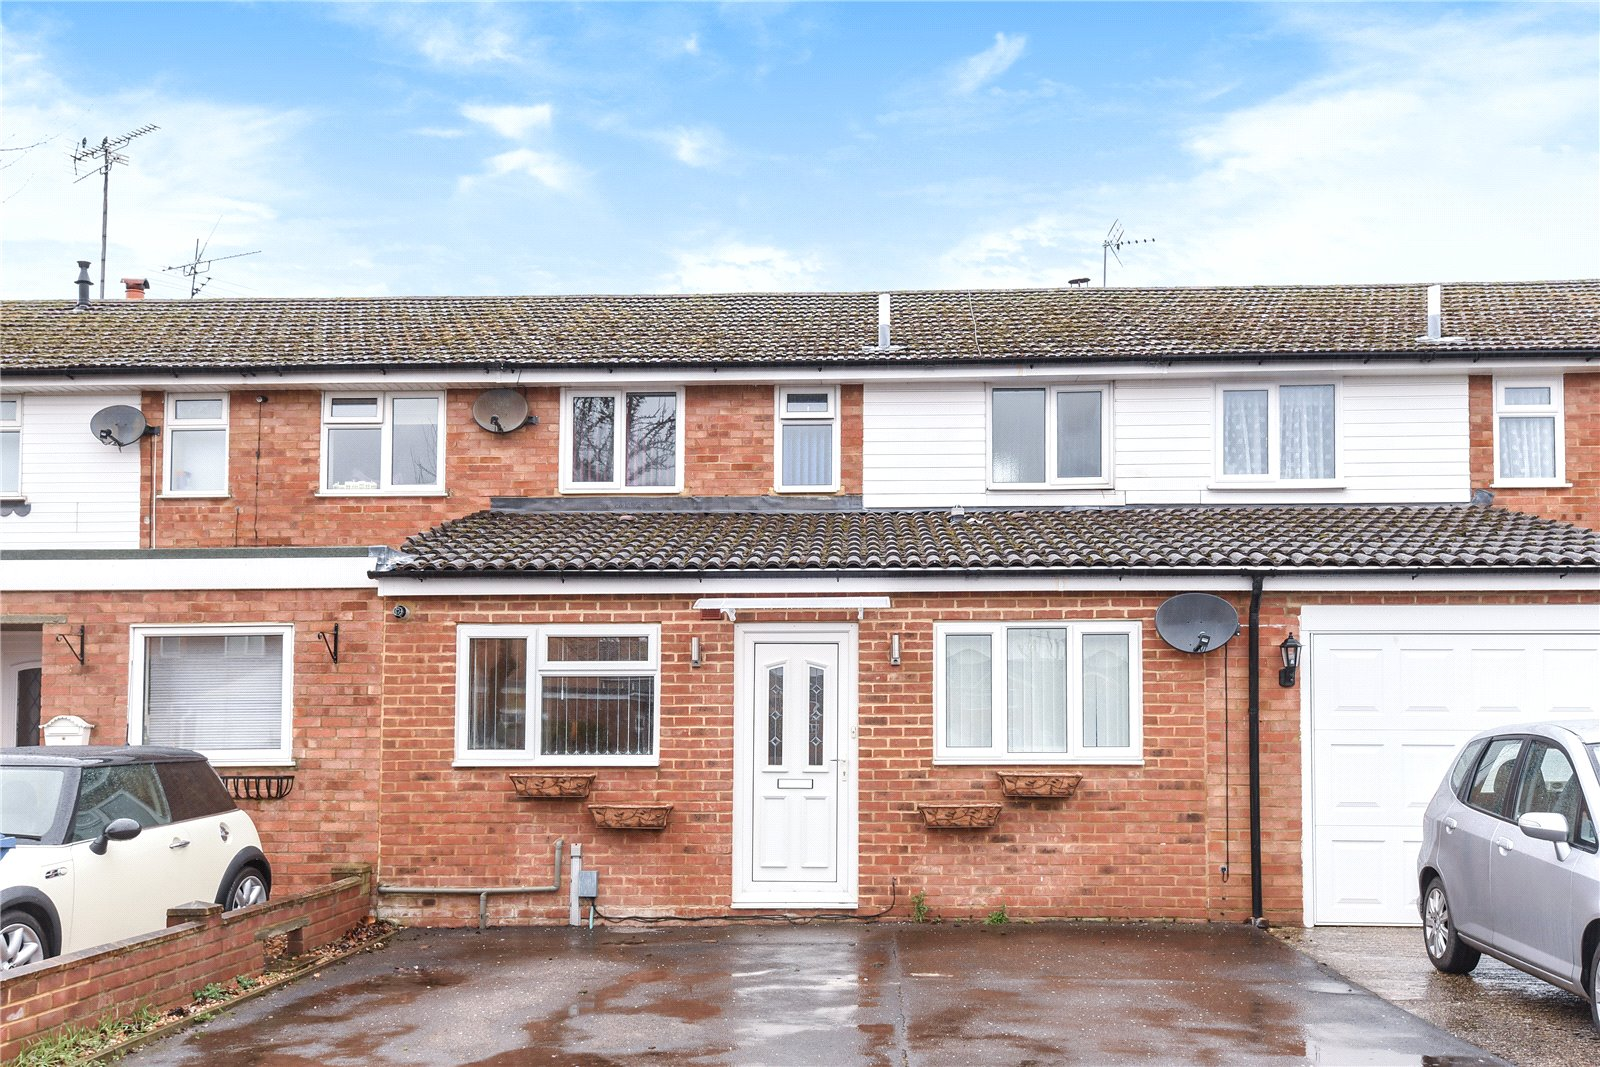 4 Bedrooms Terraced House for sale in Hamble Avenue, Blackwater, Camberley, GU17